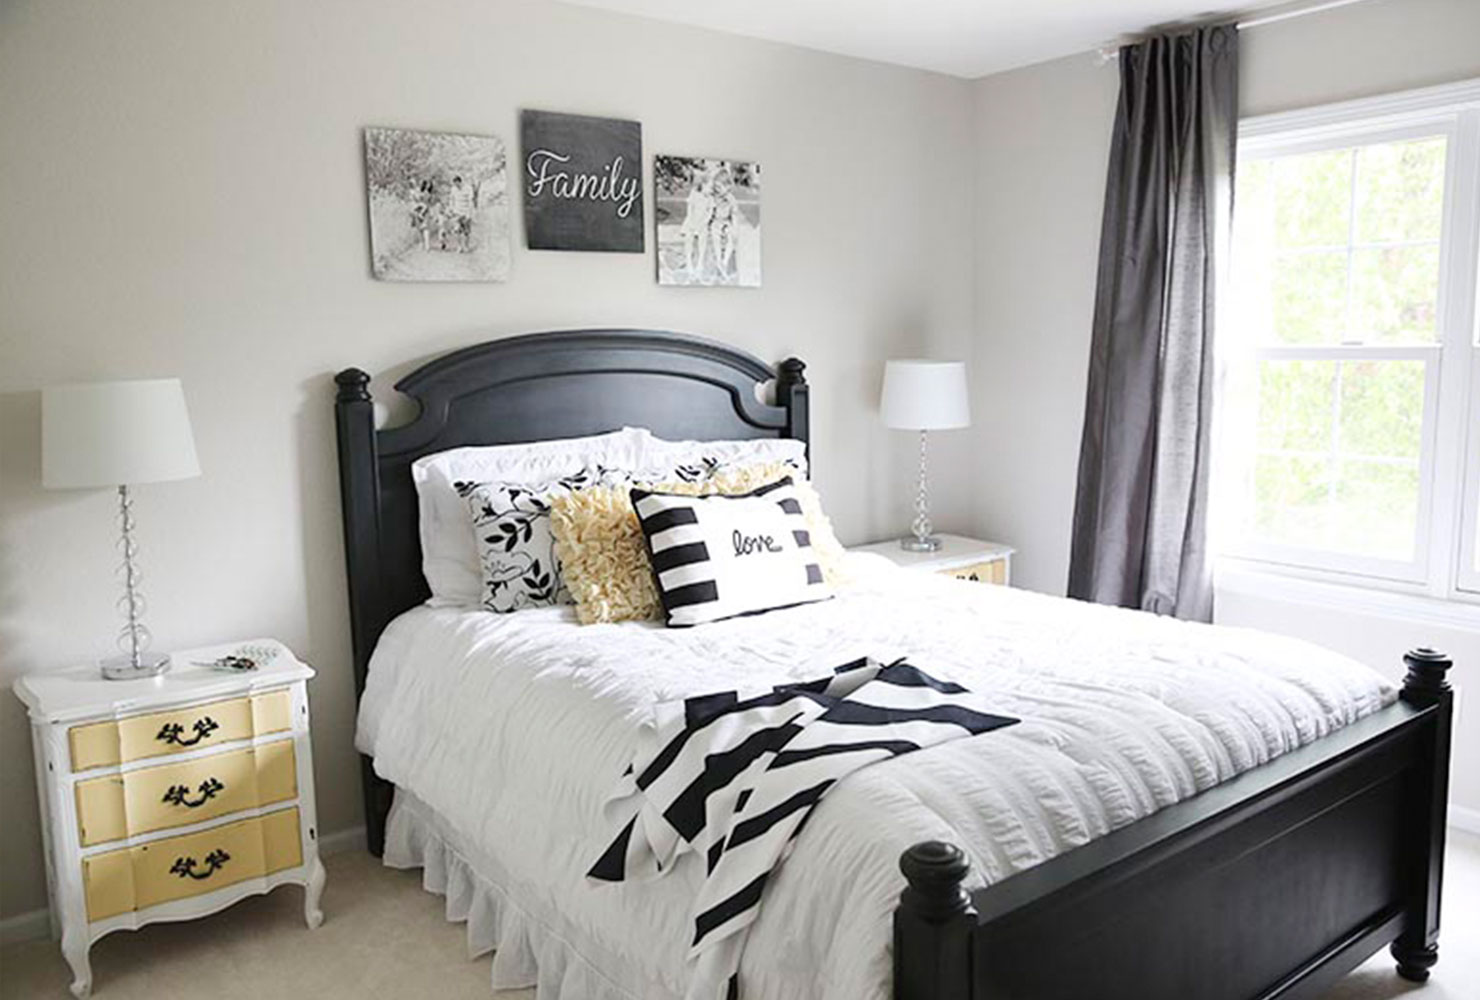 55+ DIY Room Decor Ideas to Decorate Your Home | Shutterfly on Room Decor Ideas  id=81291